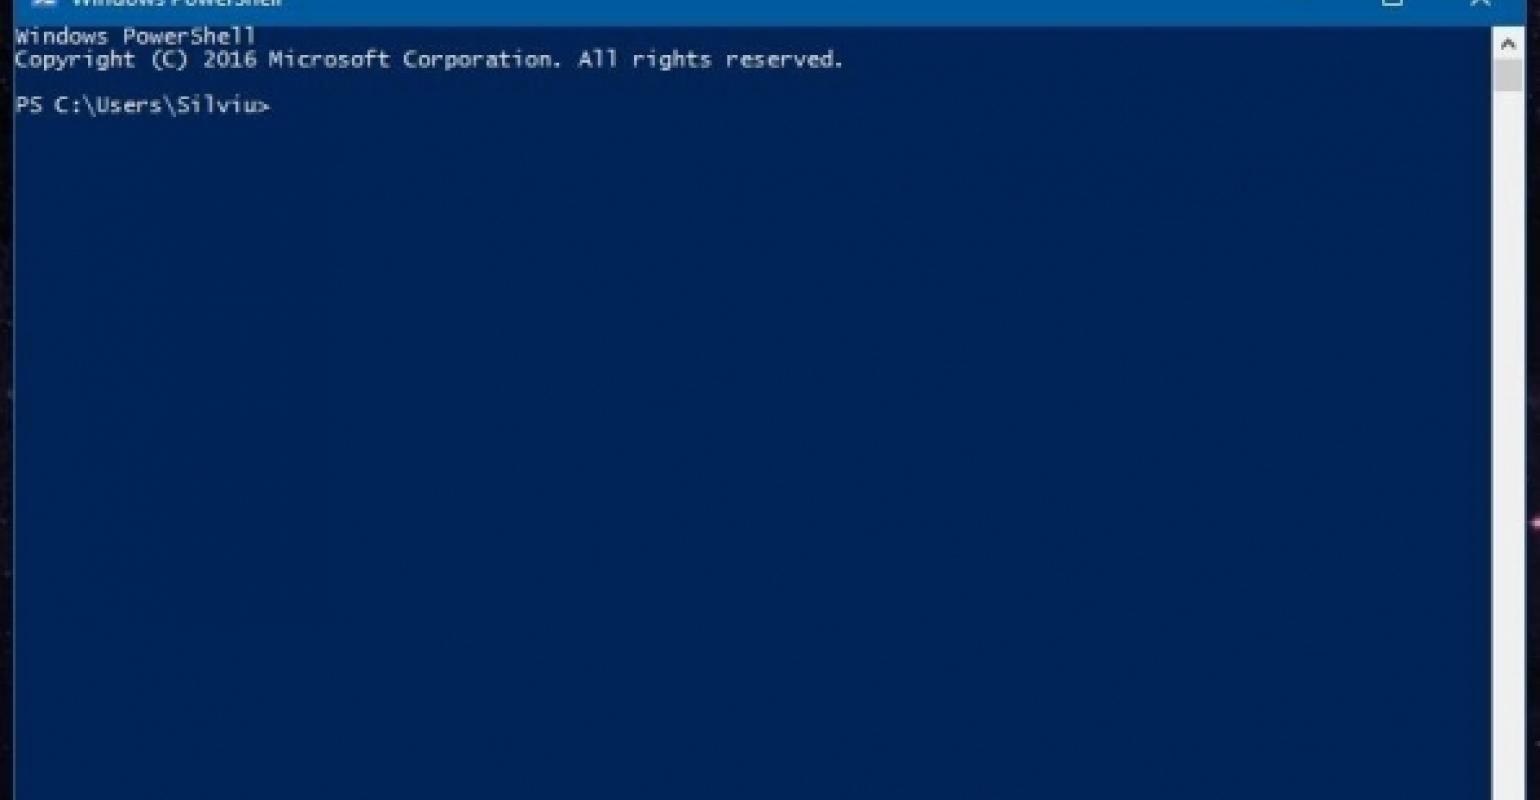 How can I change the password of many users with PowerShell